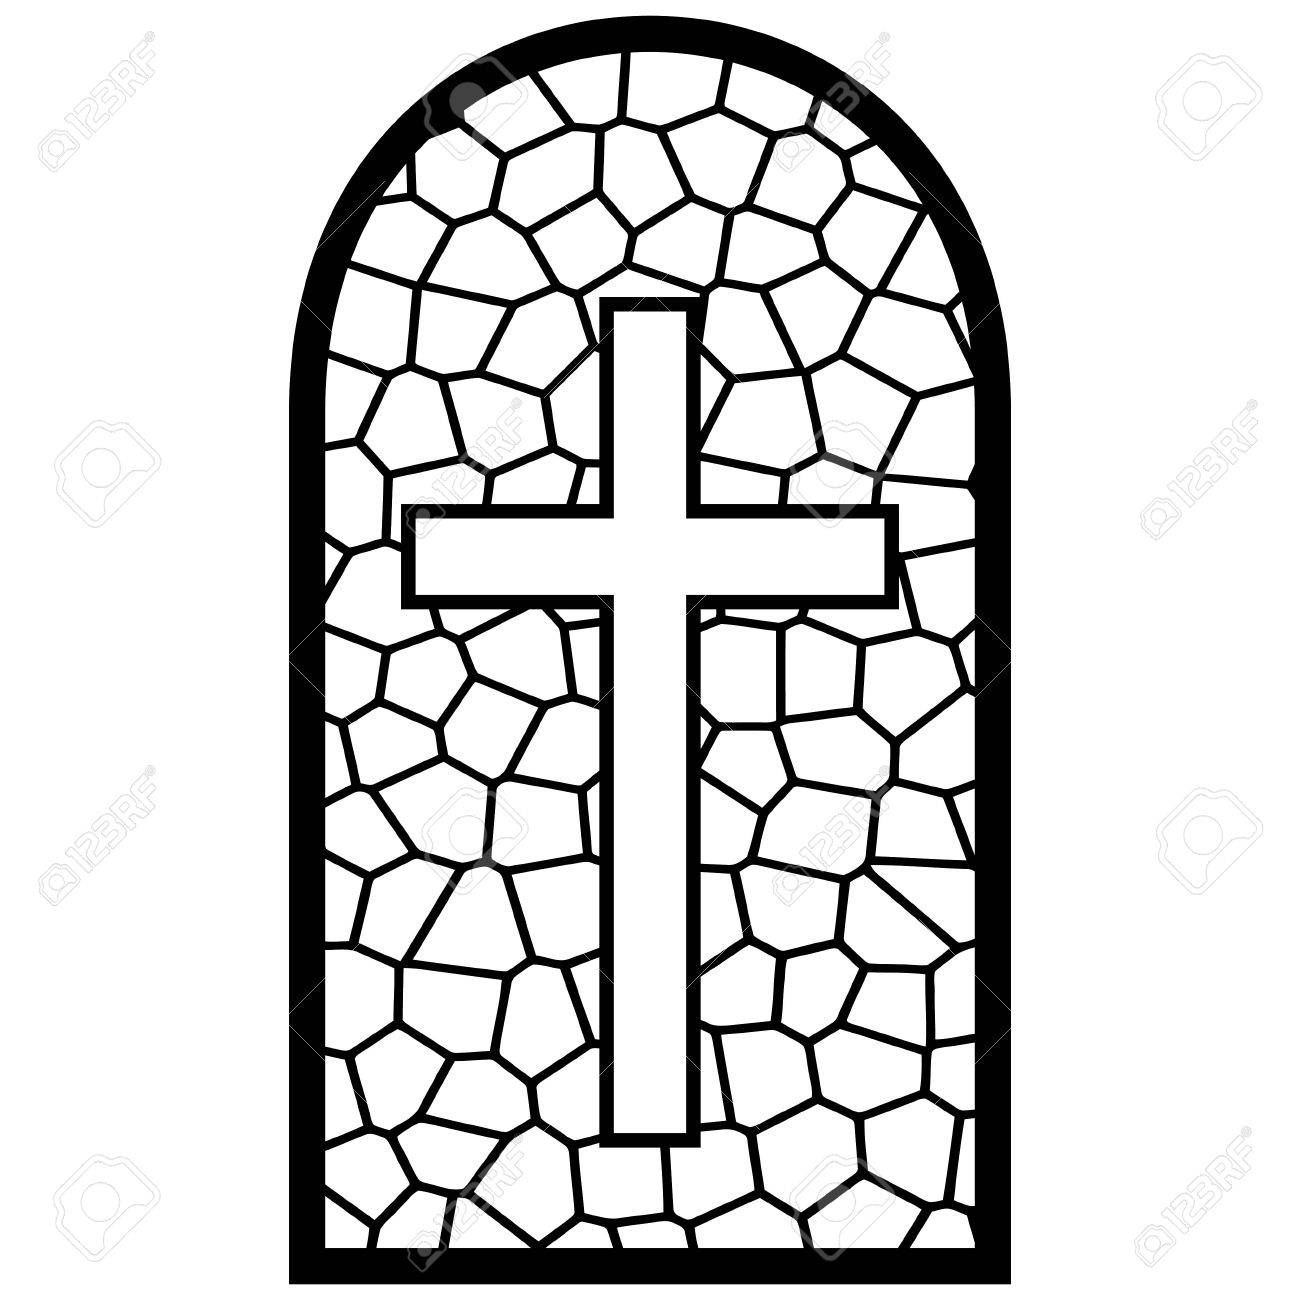 Stained glass window illustration royalty free cliparts vectors stained glass window illustration stock vector 61903895 thecheapjerseys Gallery